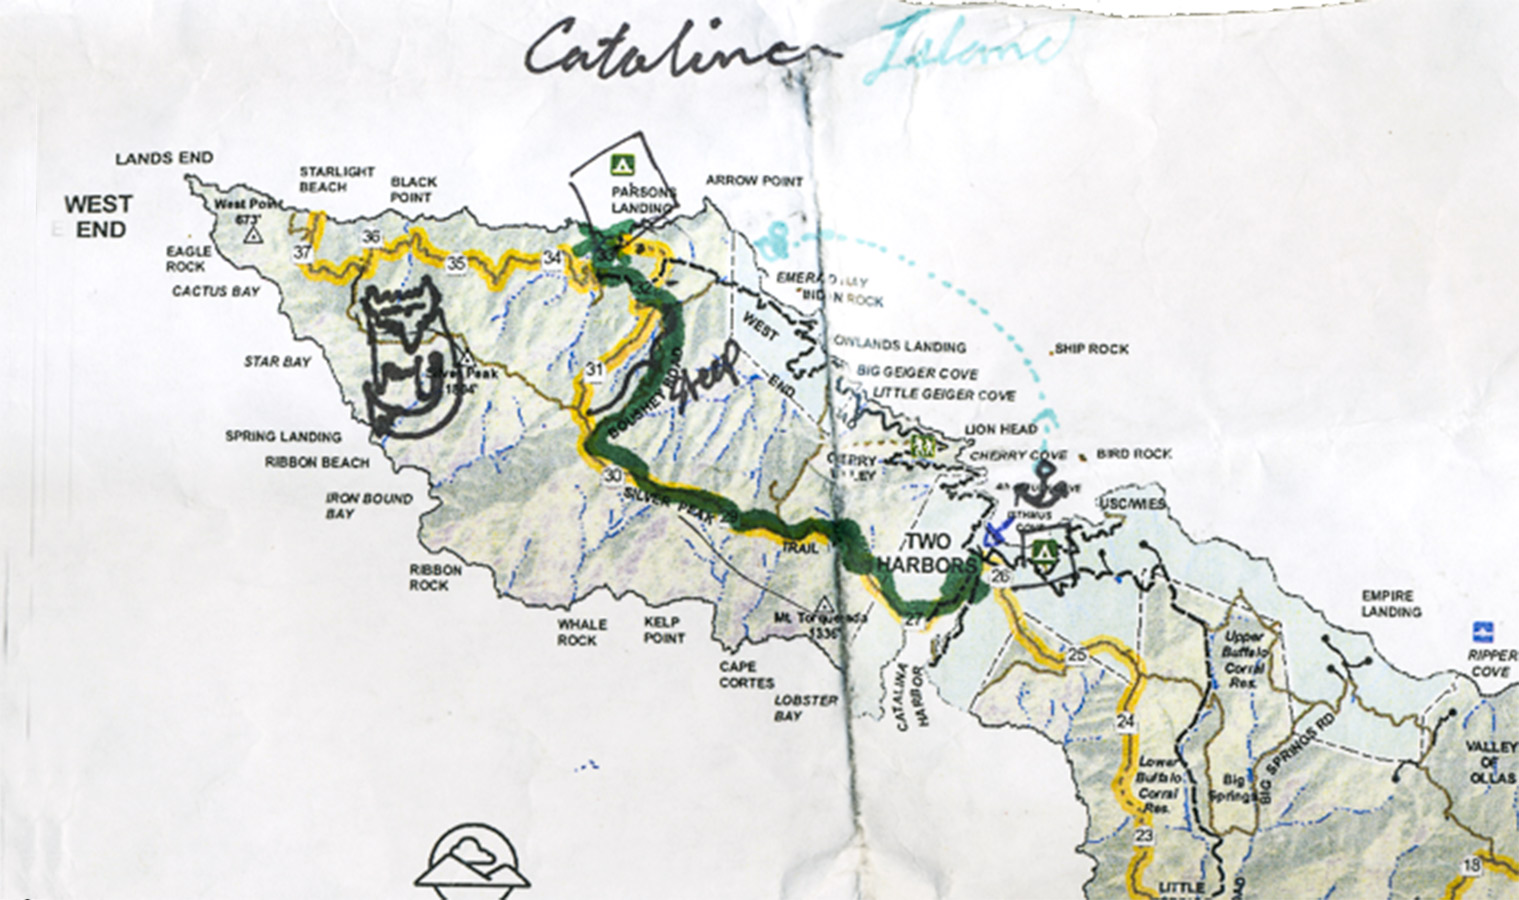 04a__2014-12-27-catalina-island-sailing-sv-unicorn-map-2